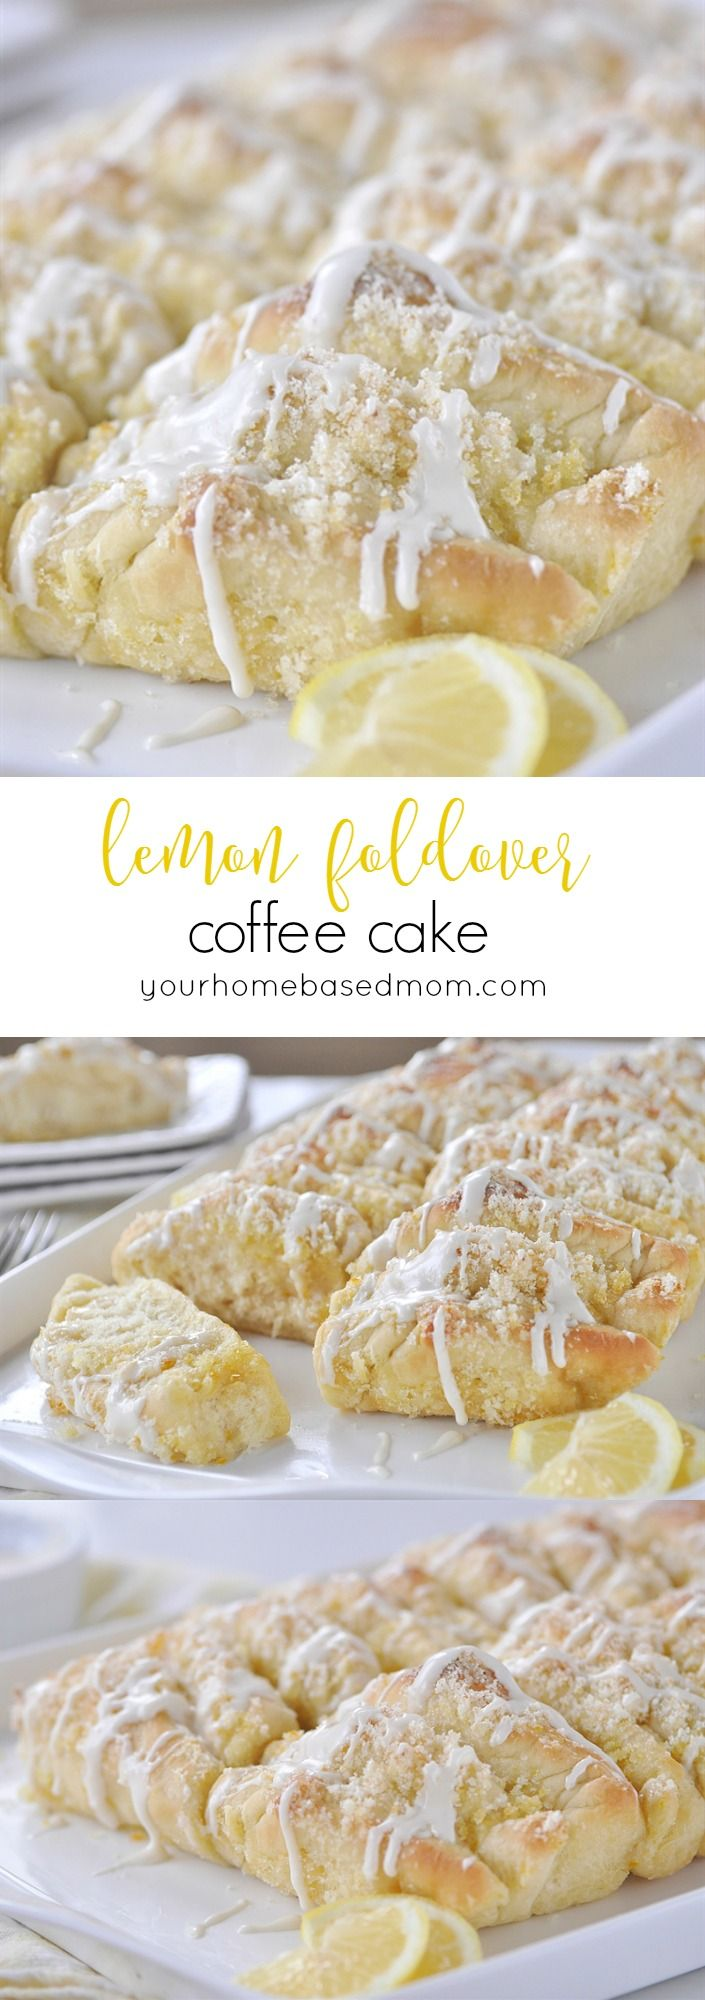 Enjoy a bite of springtime with this amazing lemon foldover coffee cake. I am a sucker for any recipe that has lemon in the name! A few…